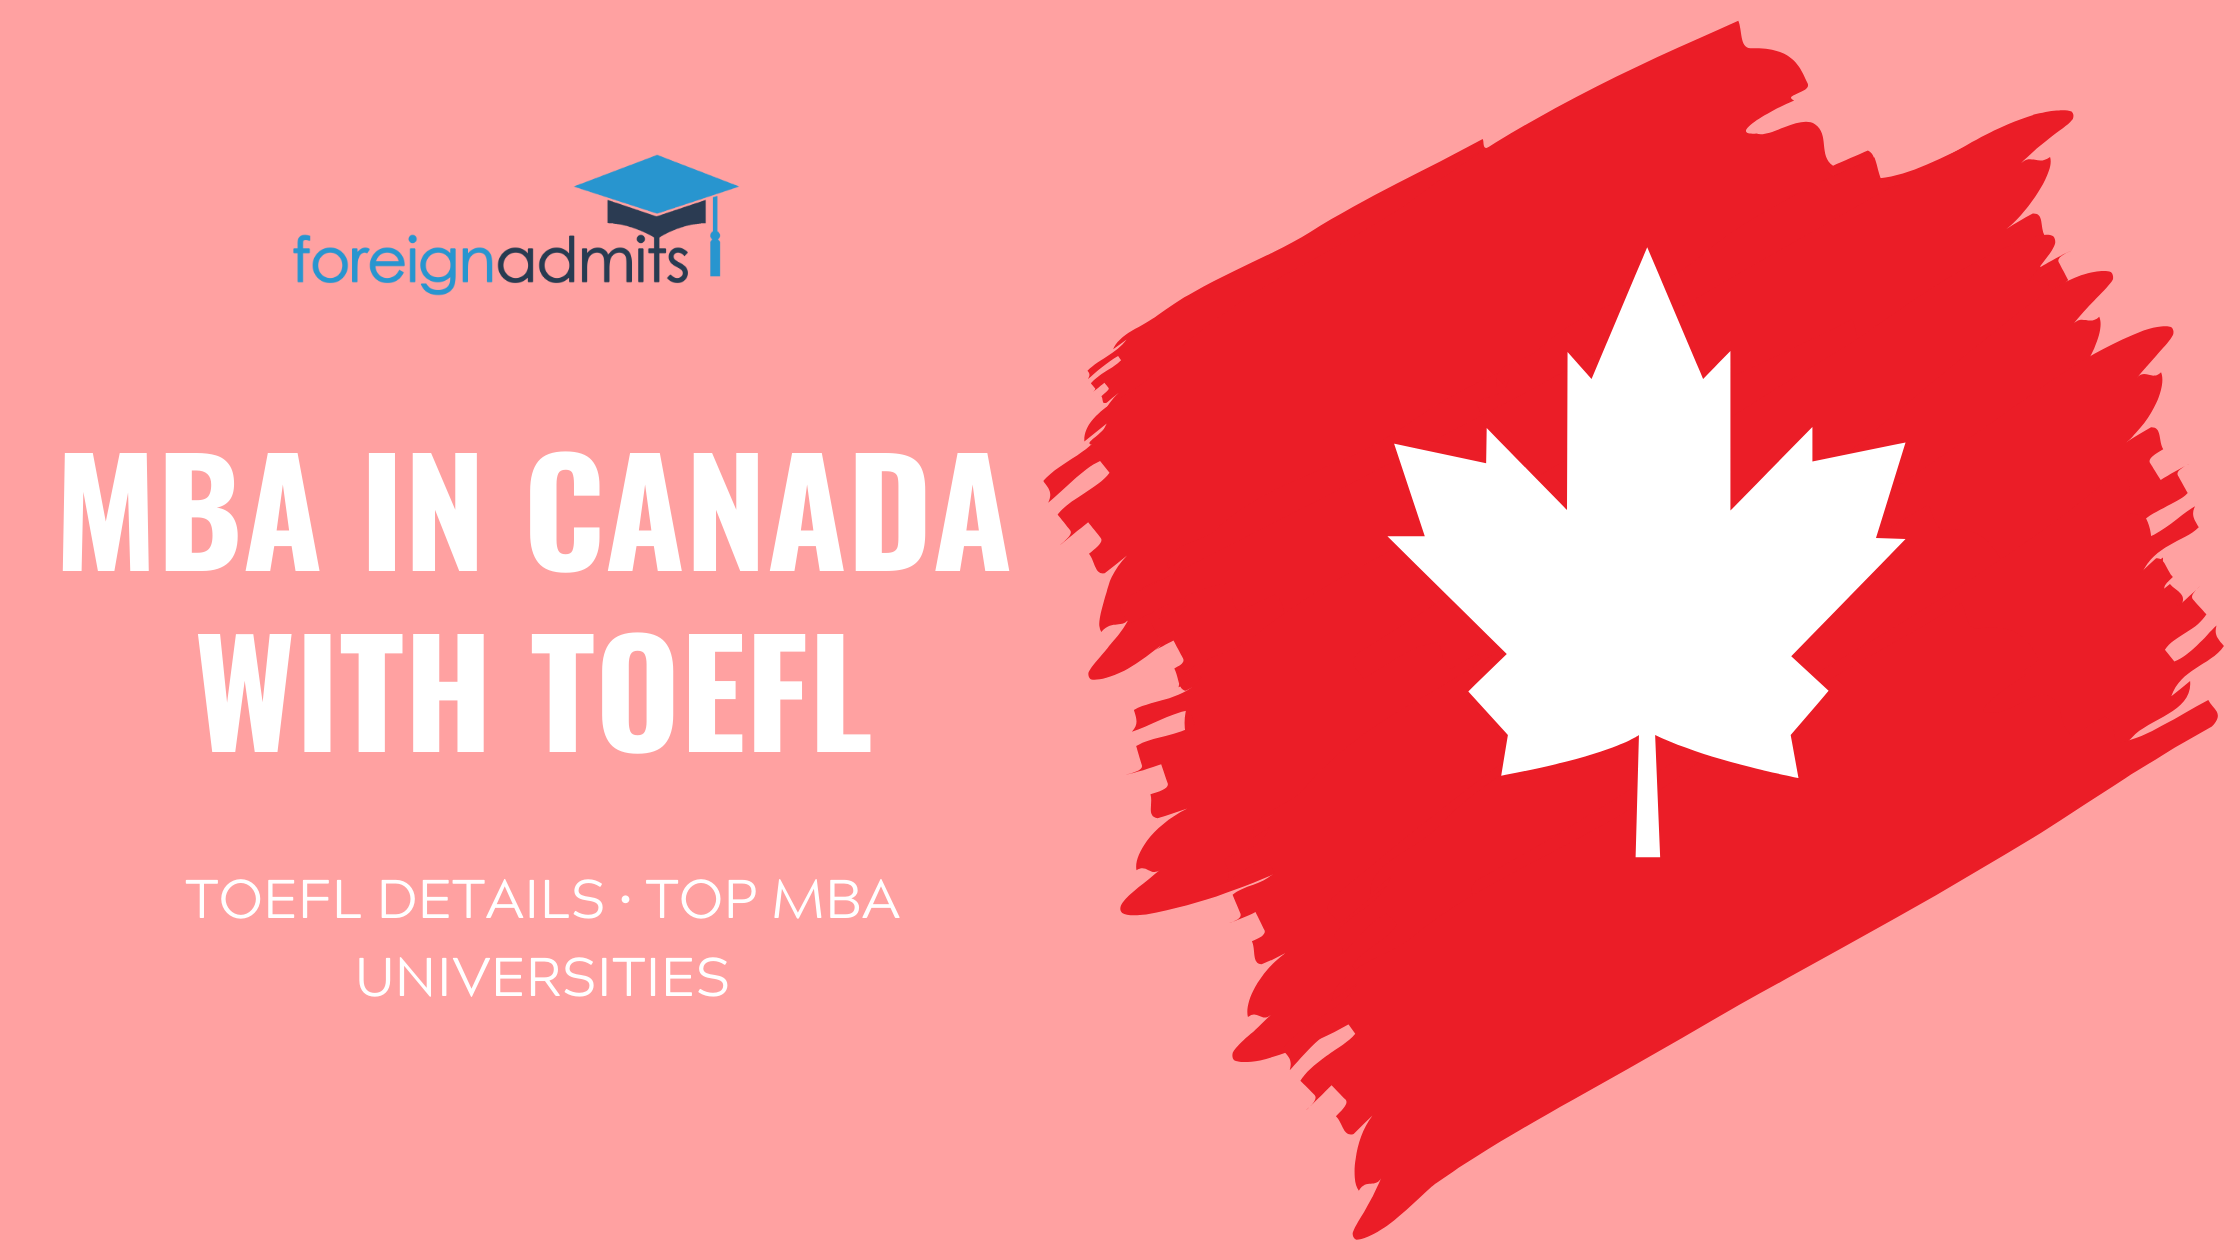 MBA in Canada with TOEFL